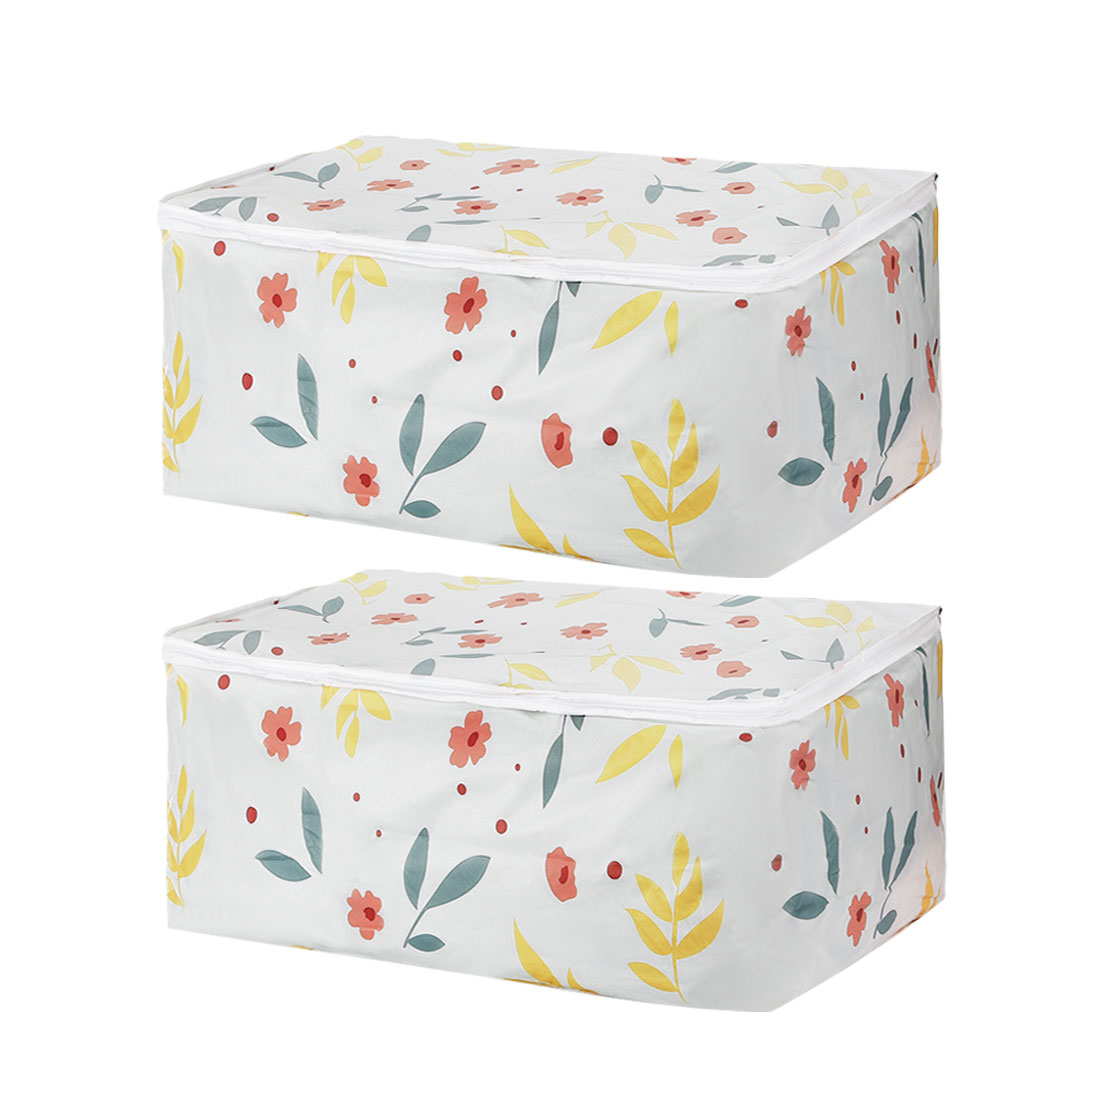 23.6 x 15.7 x 10 Inch Quilt Storage Bag Cloths Container for Closet Bedroom 2pcs